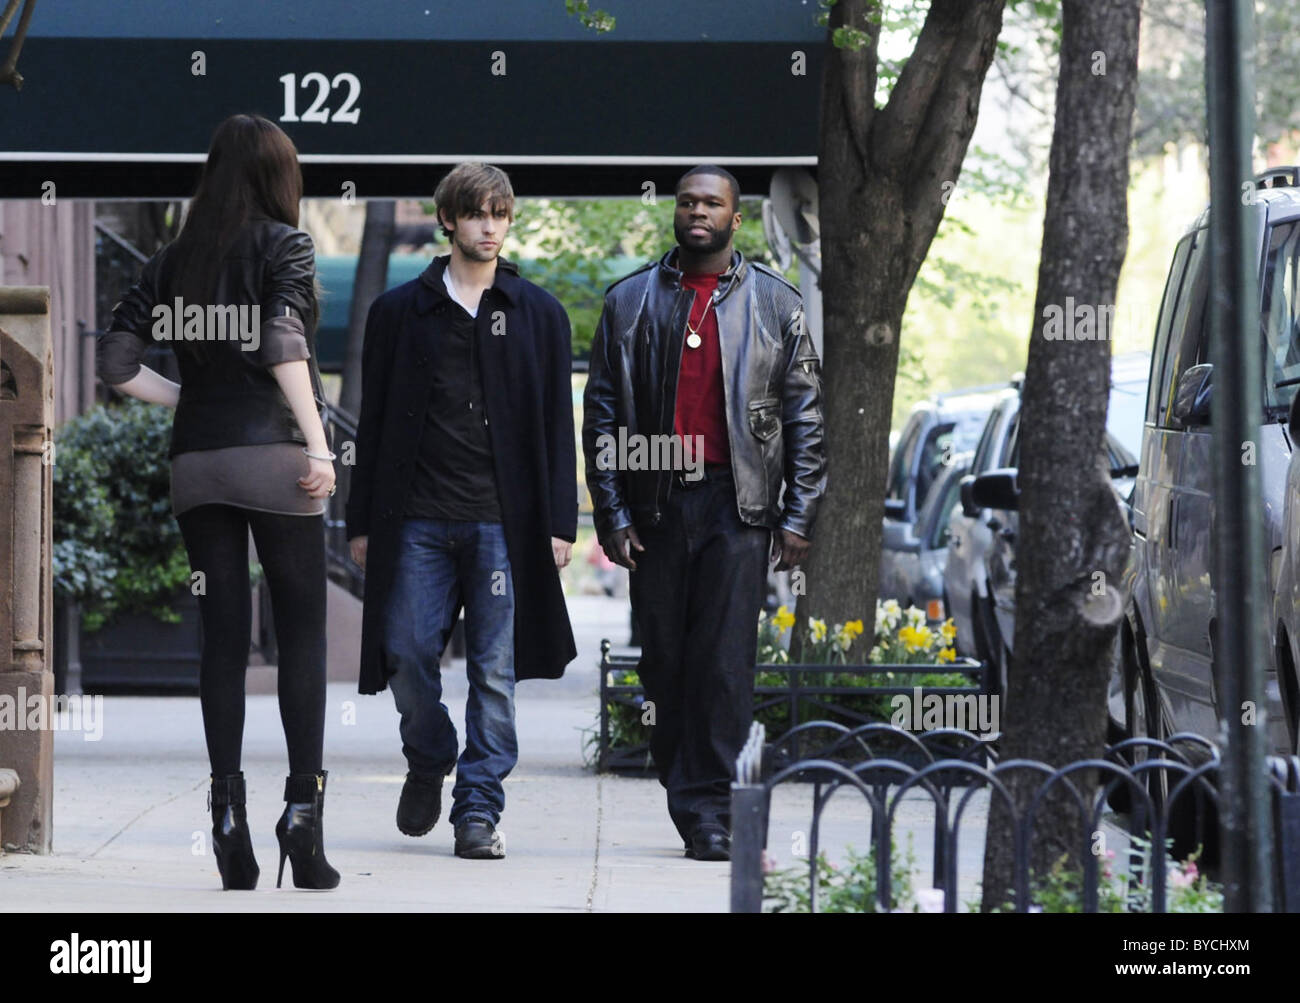 TWELVE (2010) CHACE CRAWFORD 50 CENT JOEL SCHUMACHER (DIR) 001 MOVIESTORE COLLECTION LTD - Stock Image